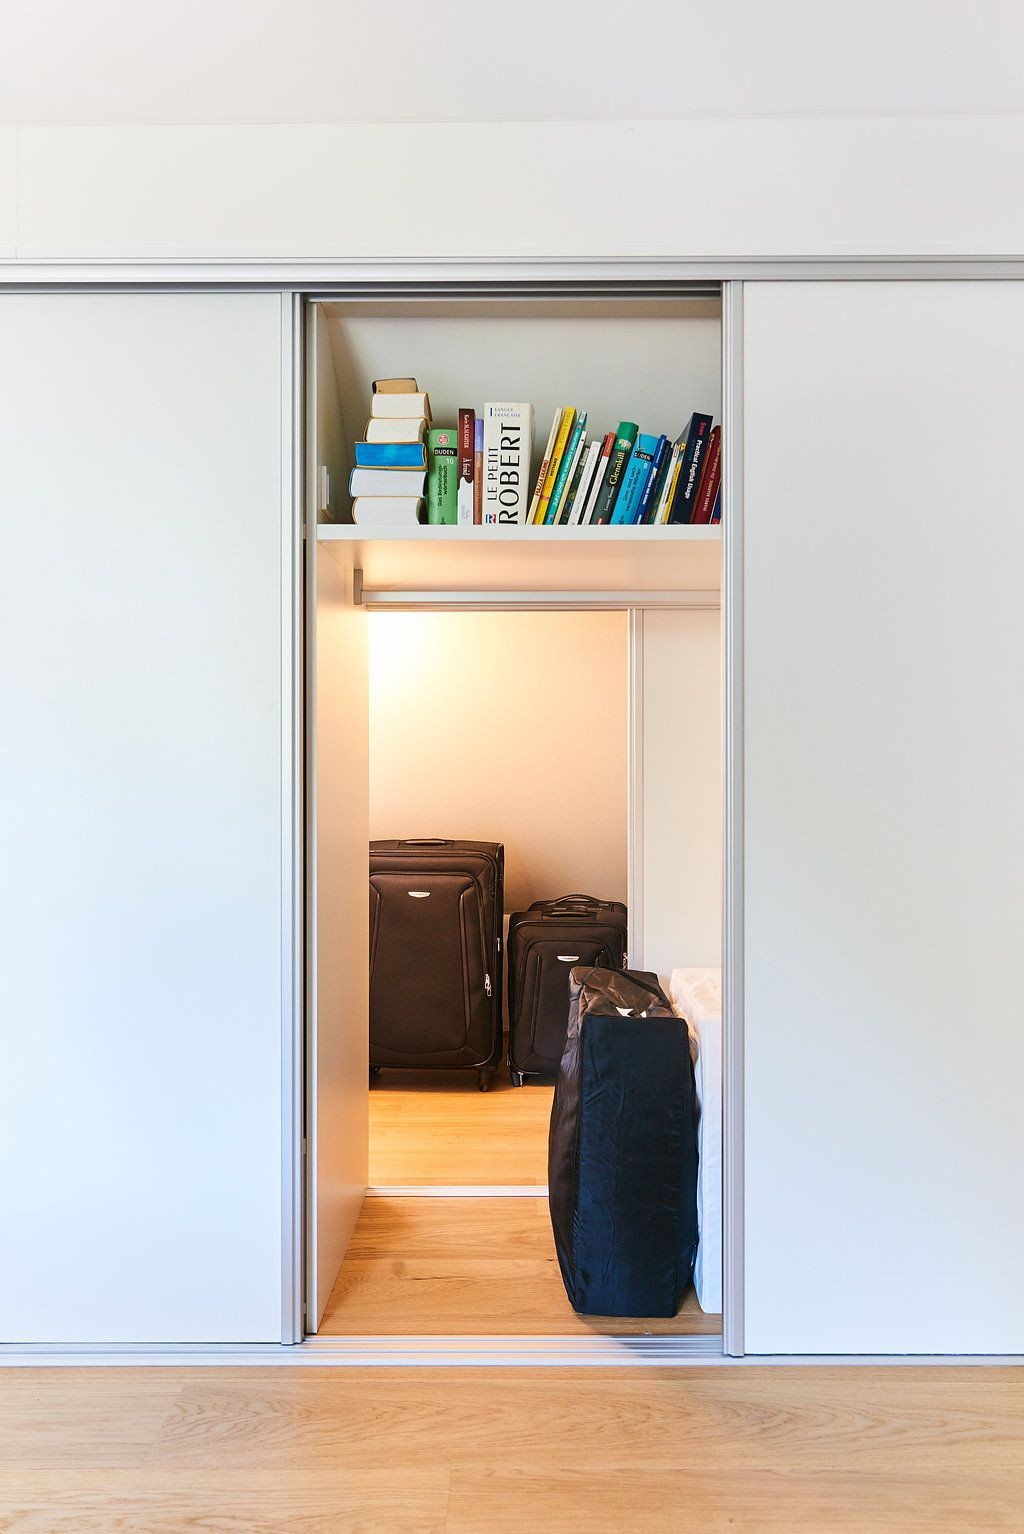 Rangement Valises Koffers Opbergen Storage Solution For Your Suitcases Solutions De Rangement Placard Sur Mesure Mobilier De Salon